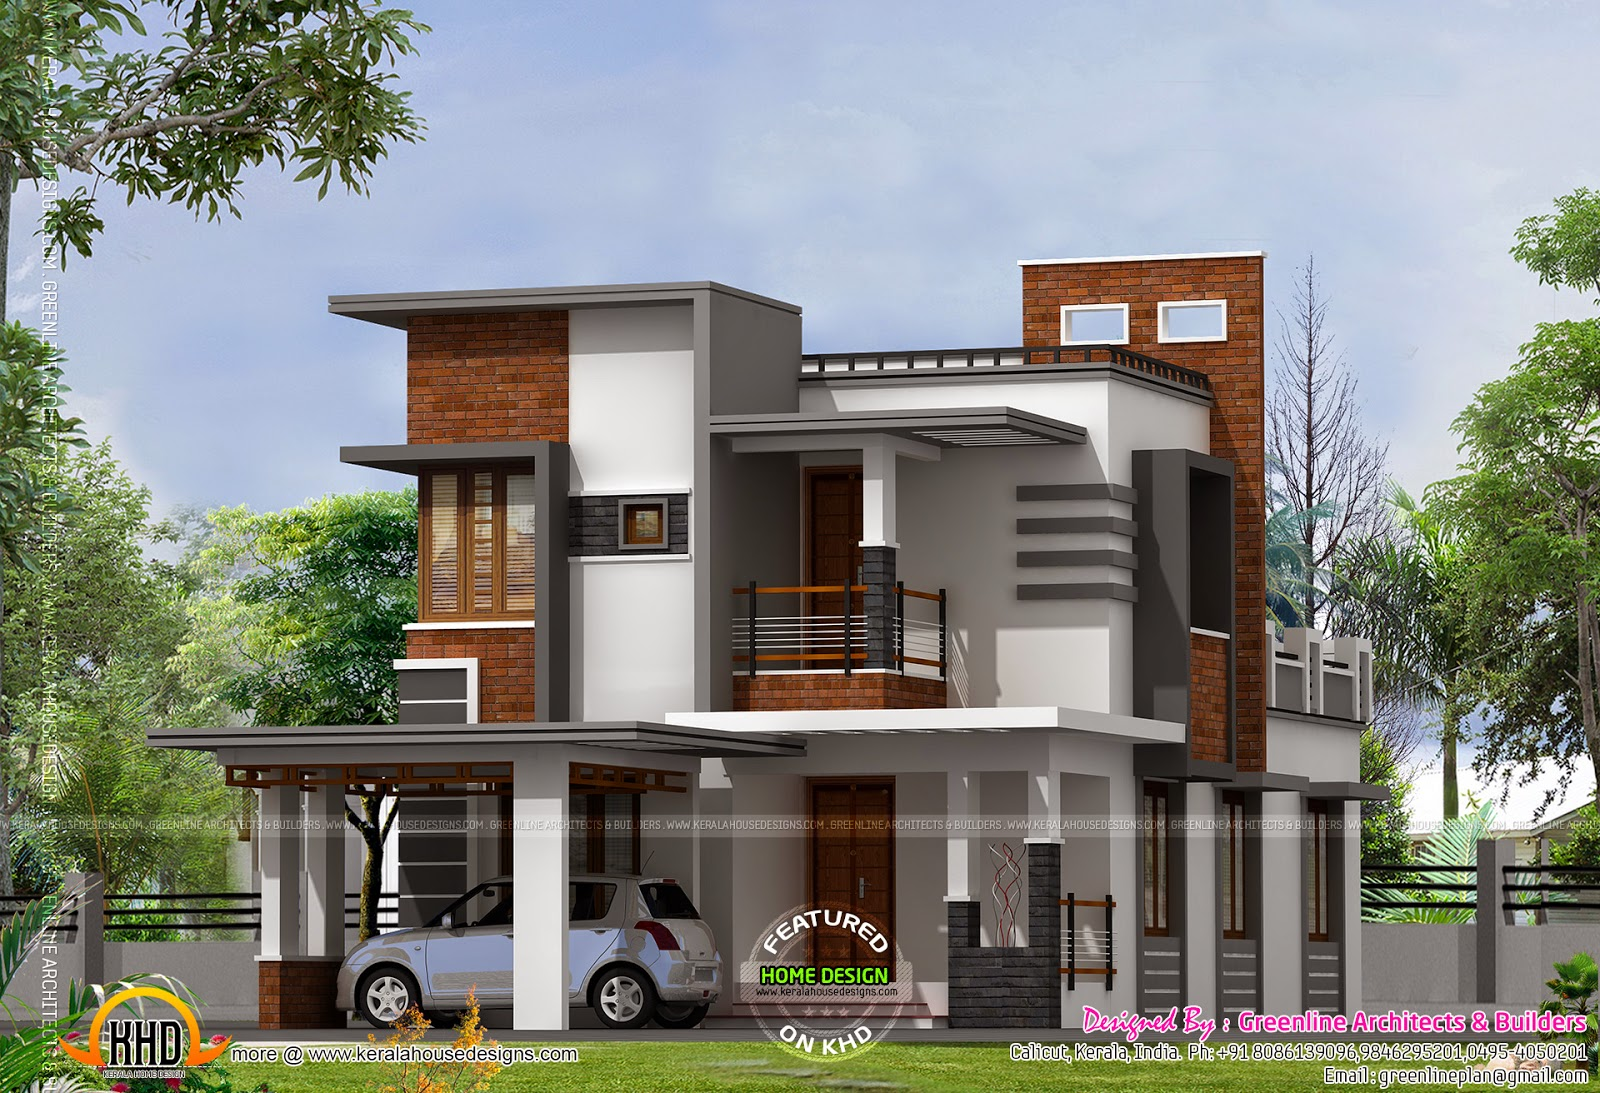 Low cost contemporary house kerala home design and floor plans - Illuminazione design low cost ...